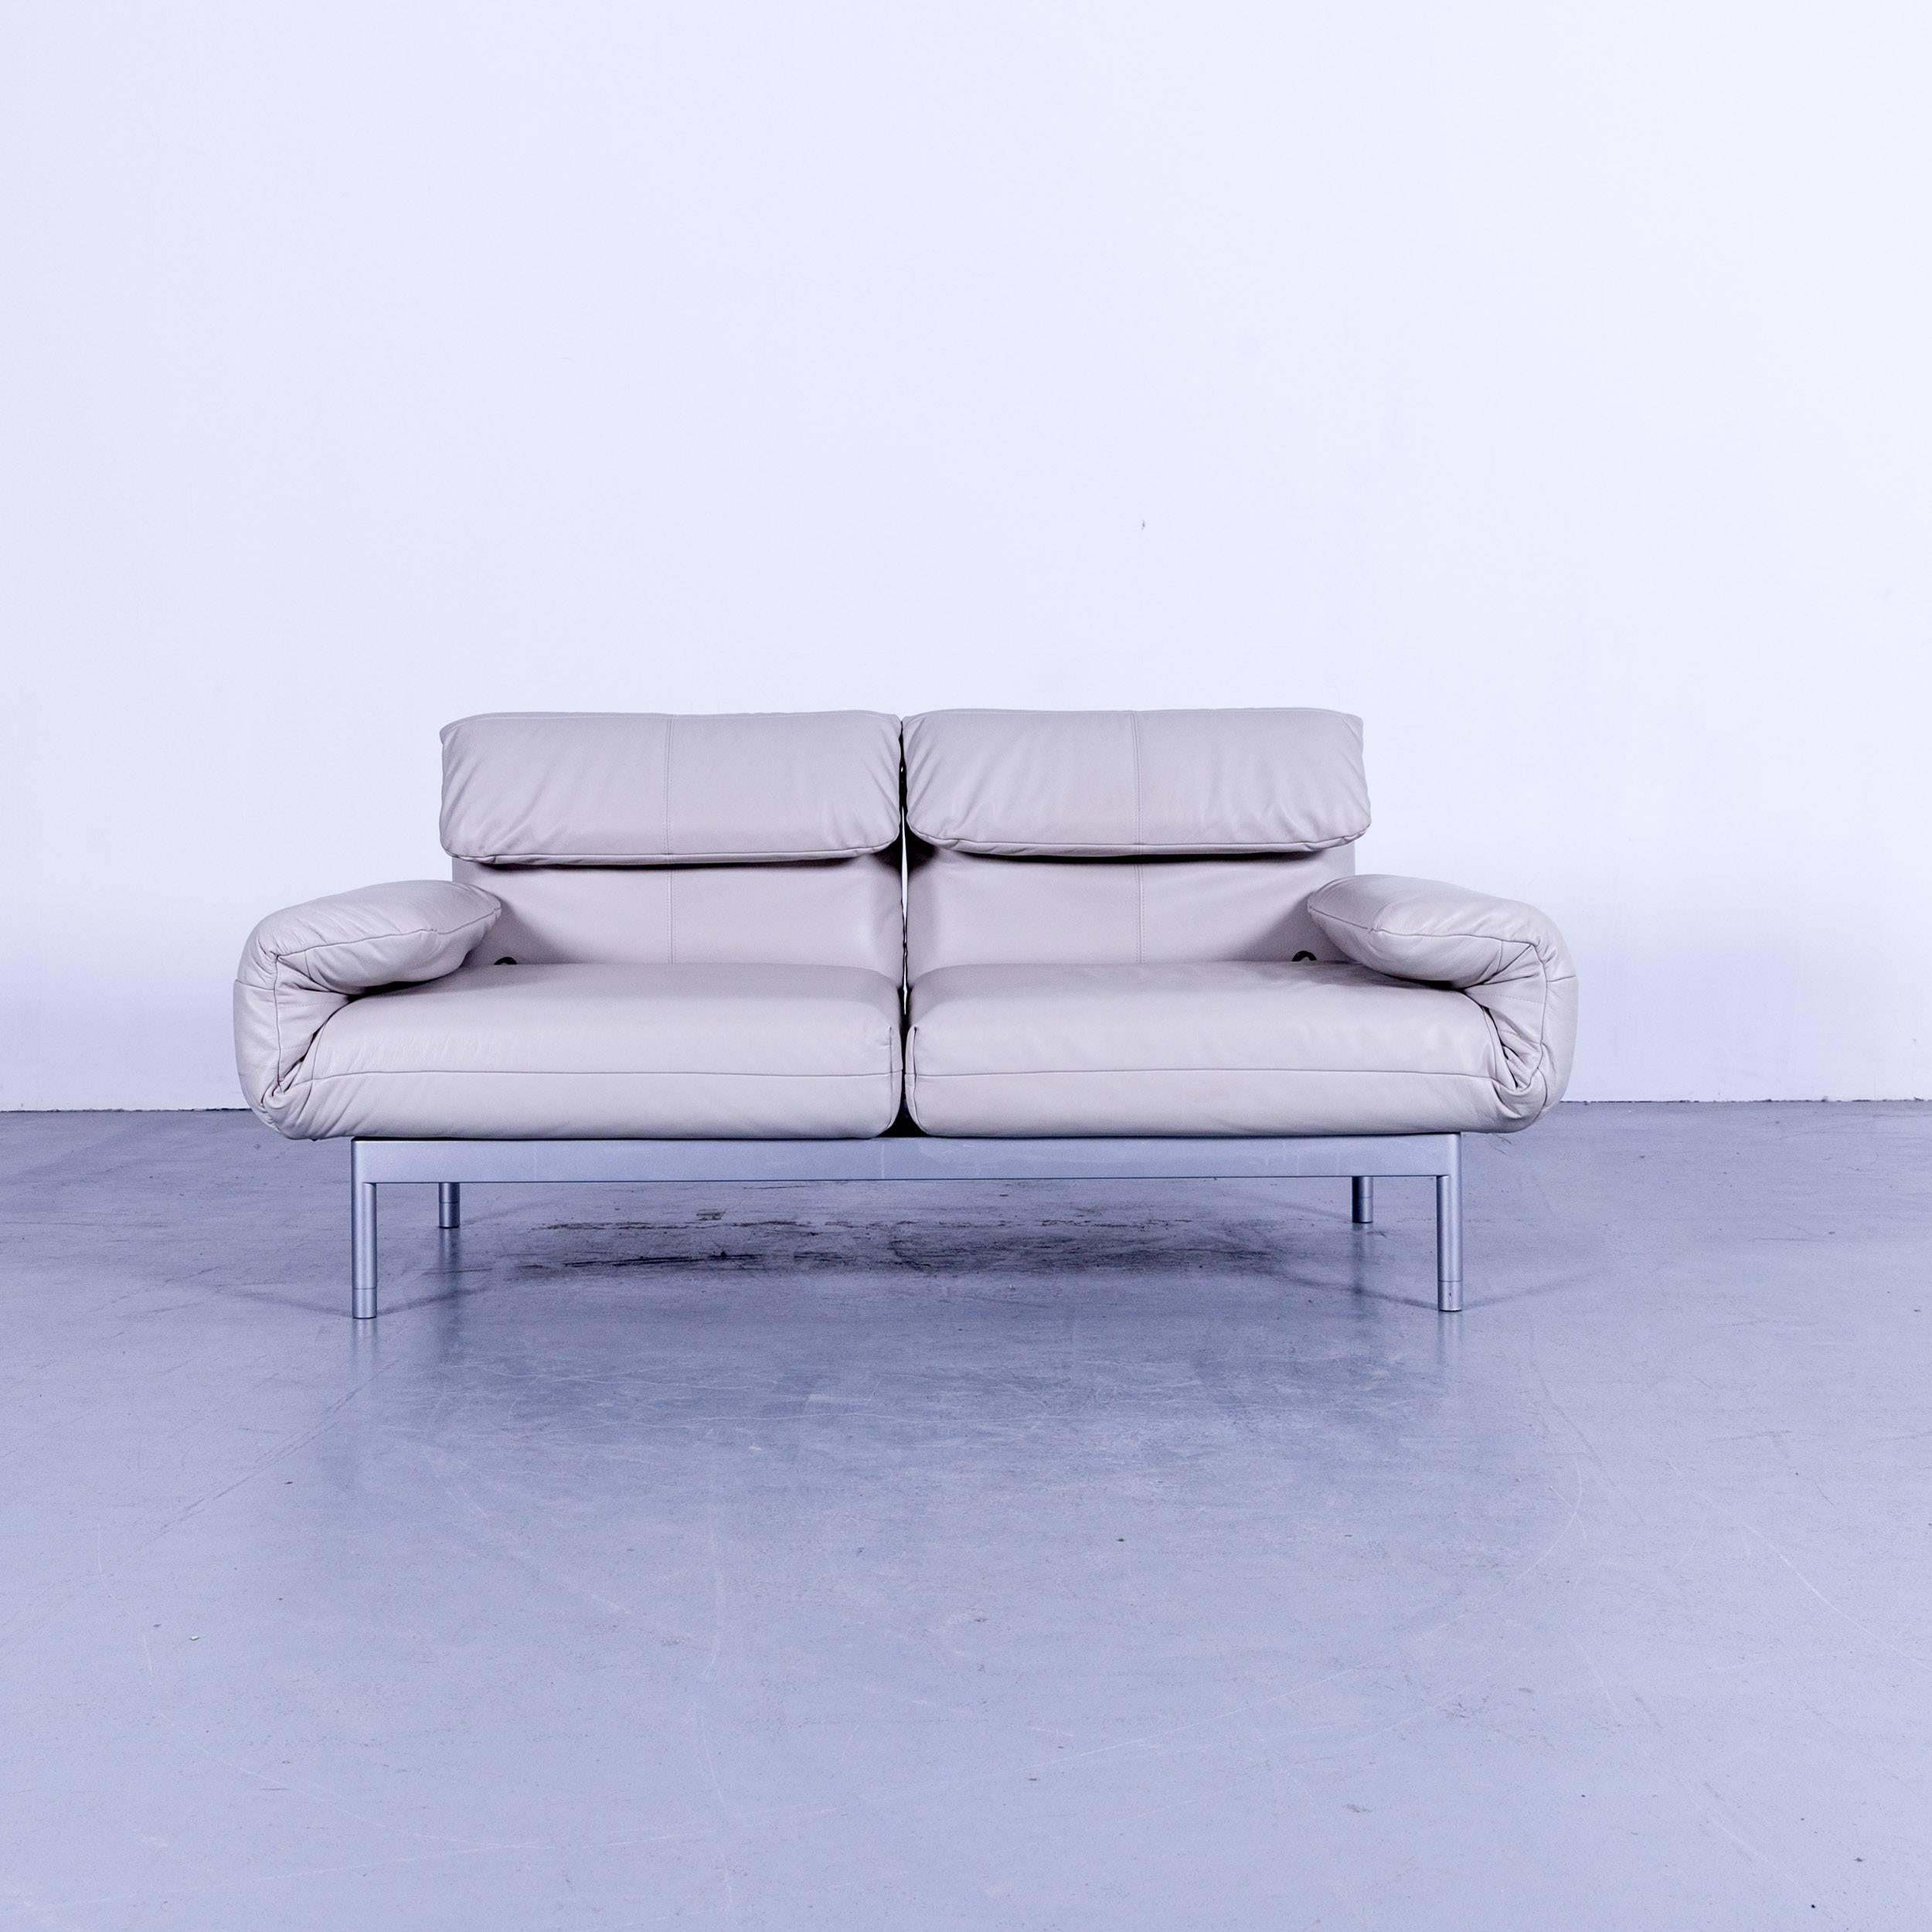 Sofa Funktion Sofa Rolf Benz Perfect Rolf Benz Sofa With Sofa Rolf Benz